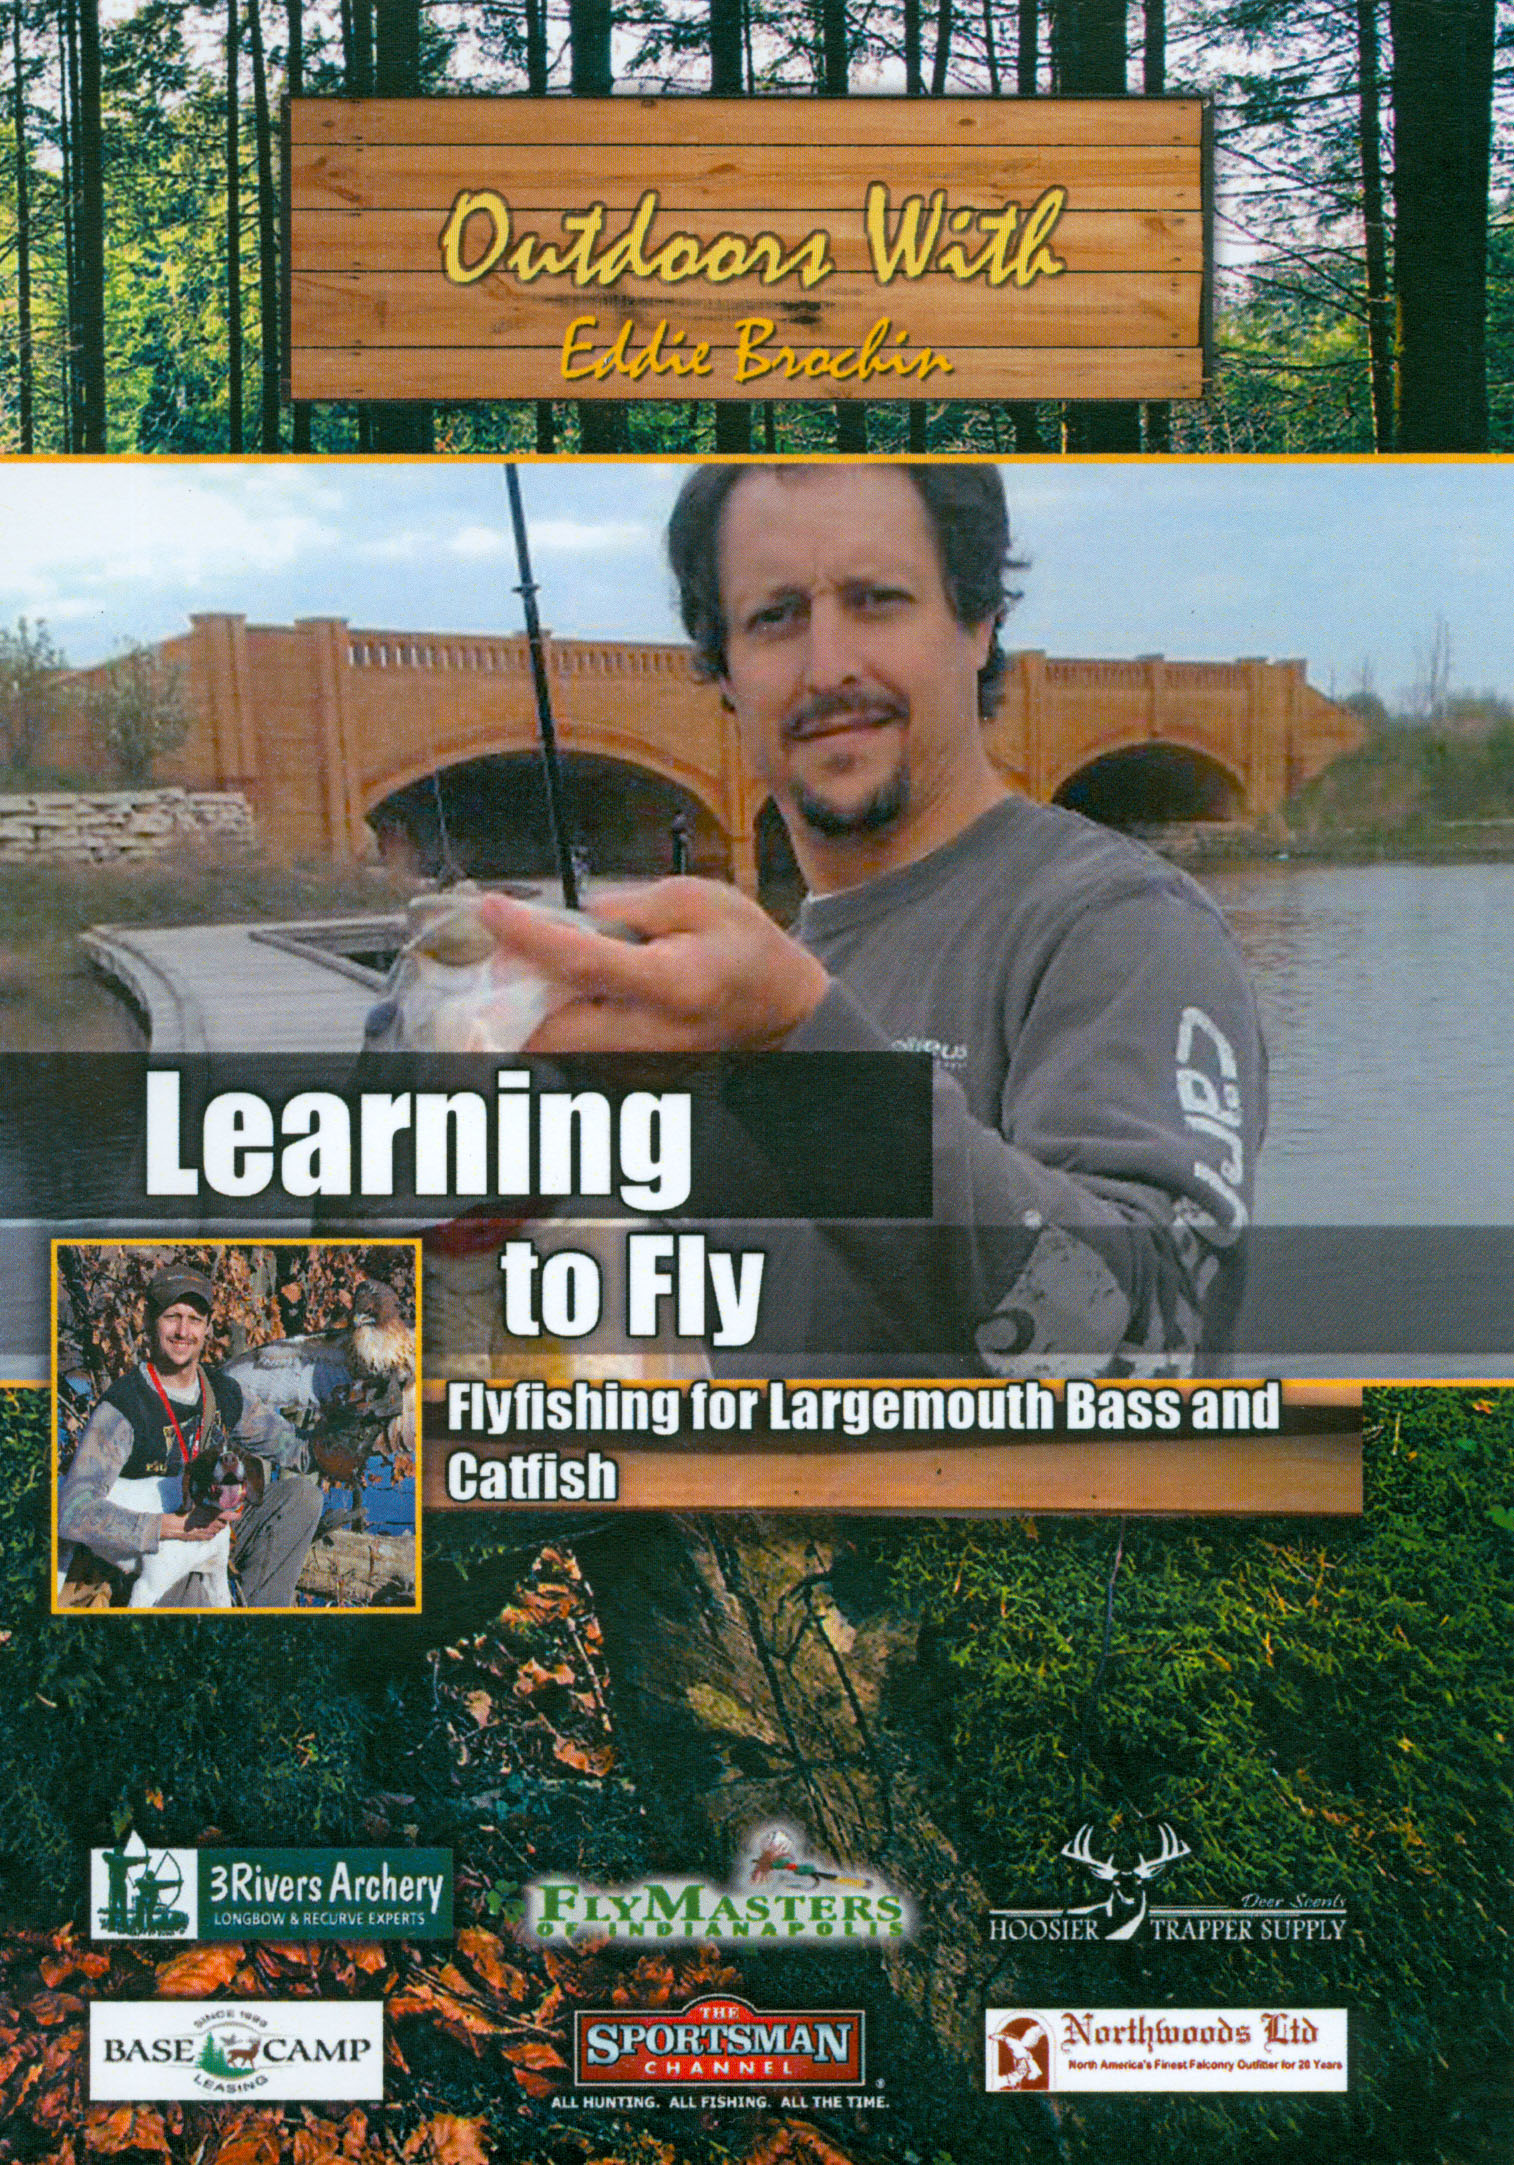 Outdoors With Eddie Brochin: Learning to Fly